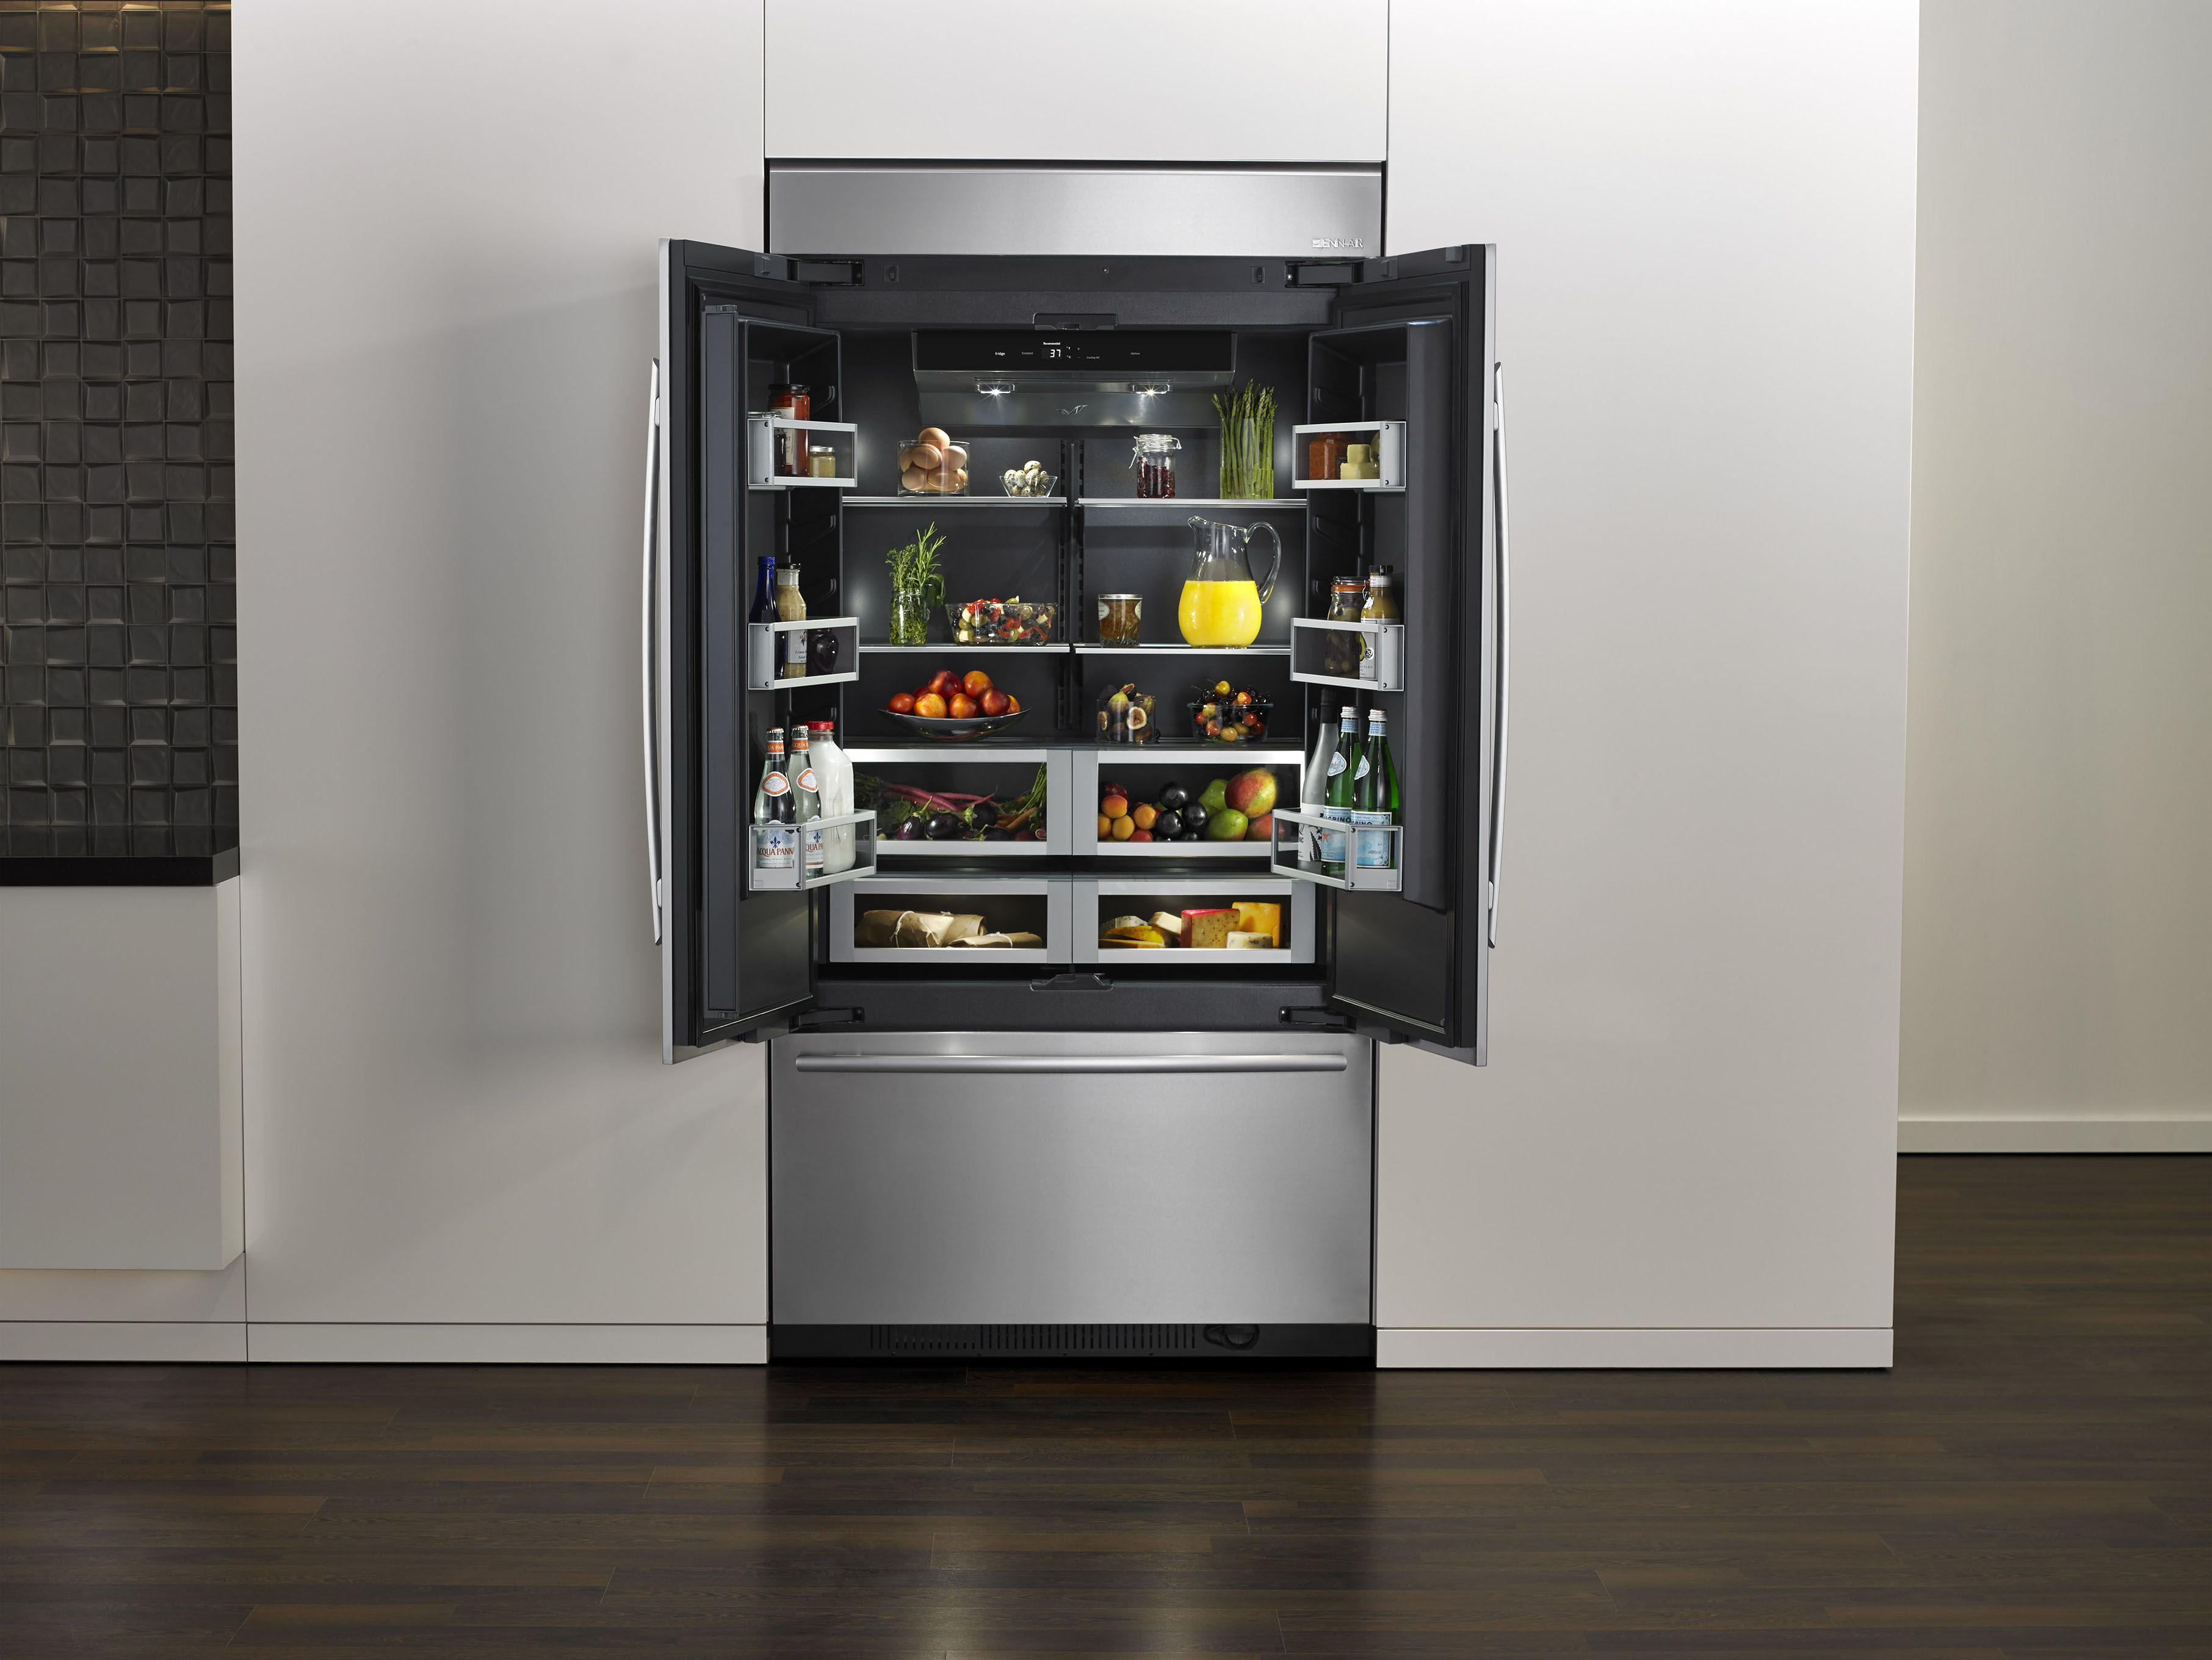 jenn air introduced a new black interior refrigerator it